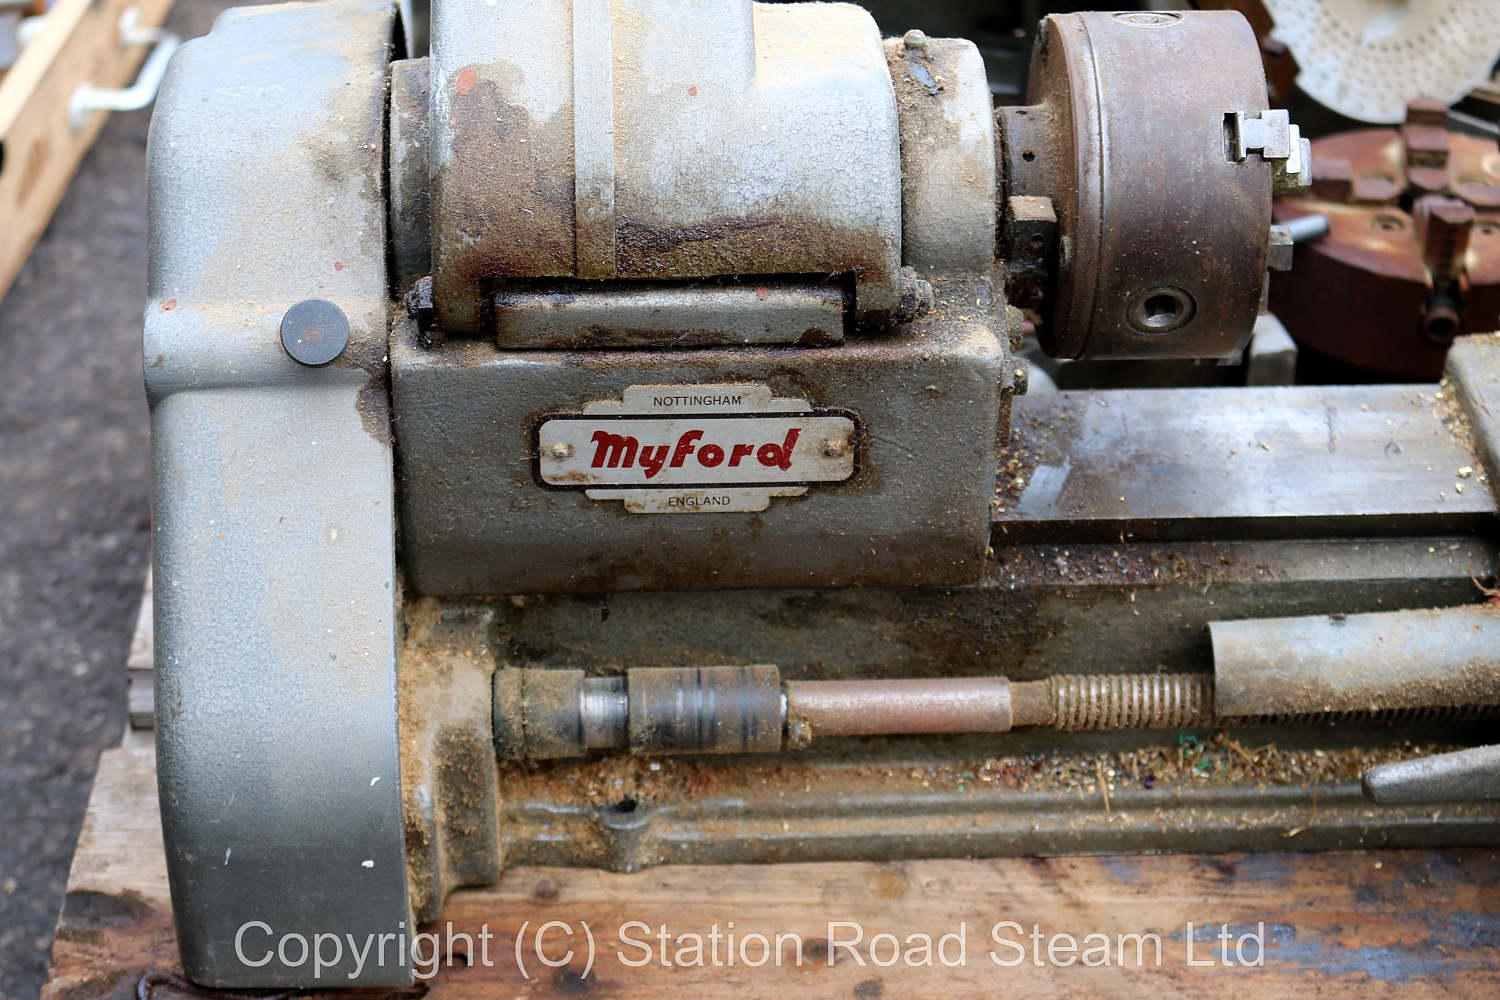 Myford Speed 10 lathe with accessories